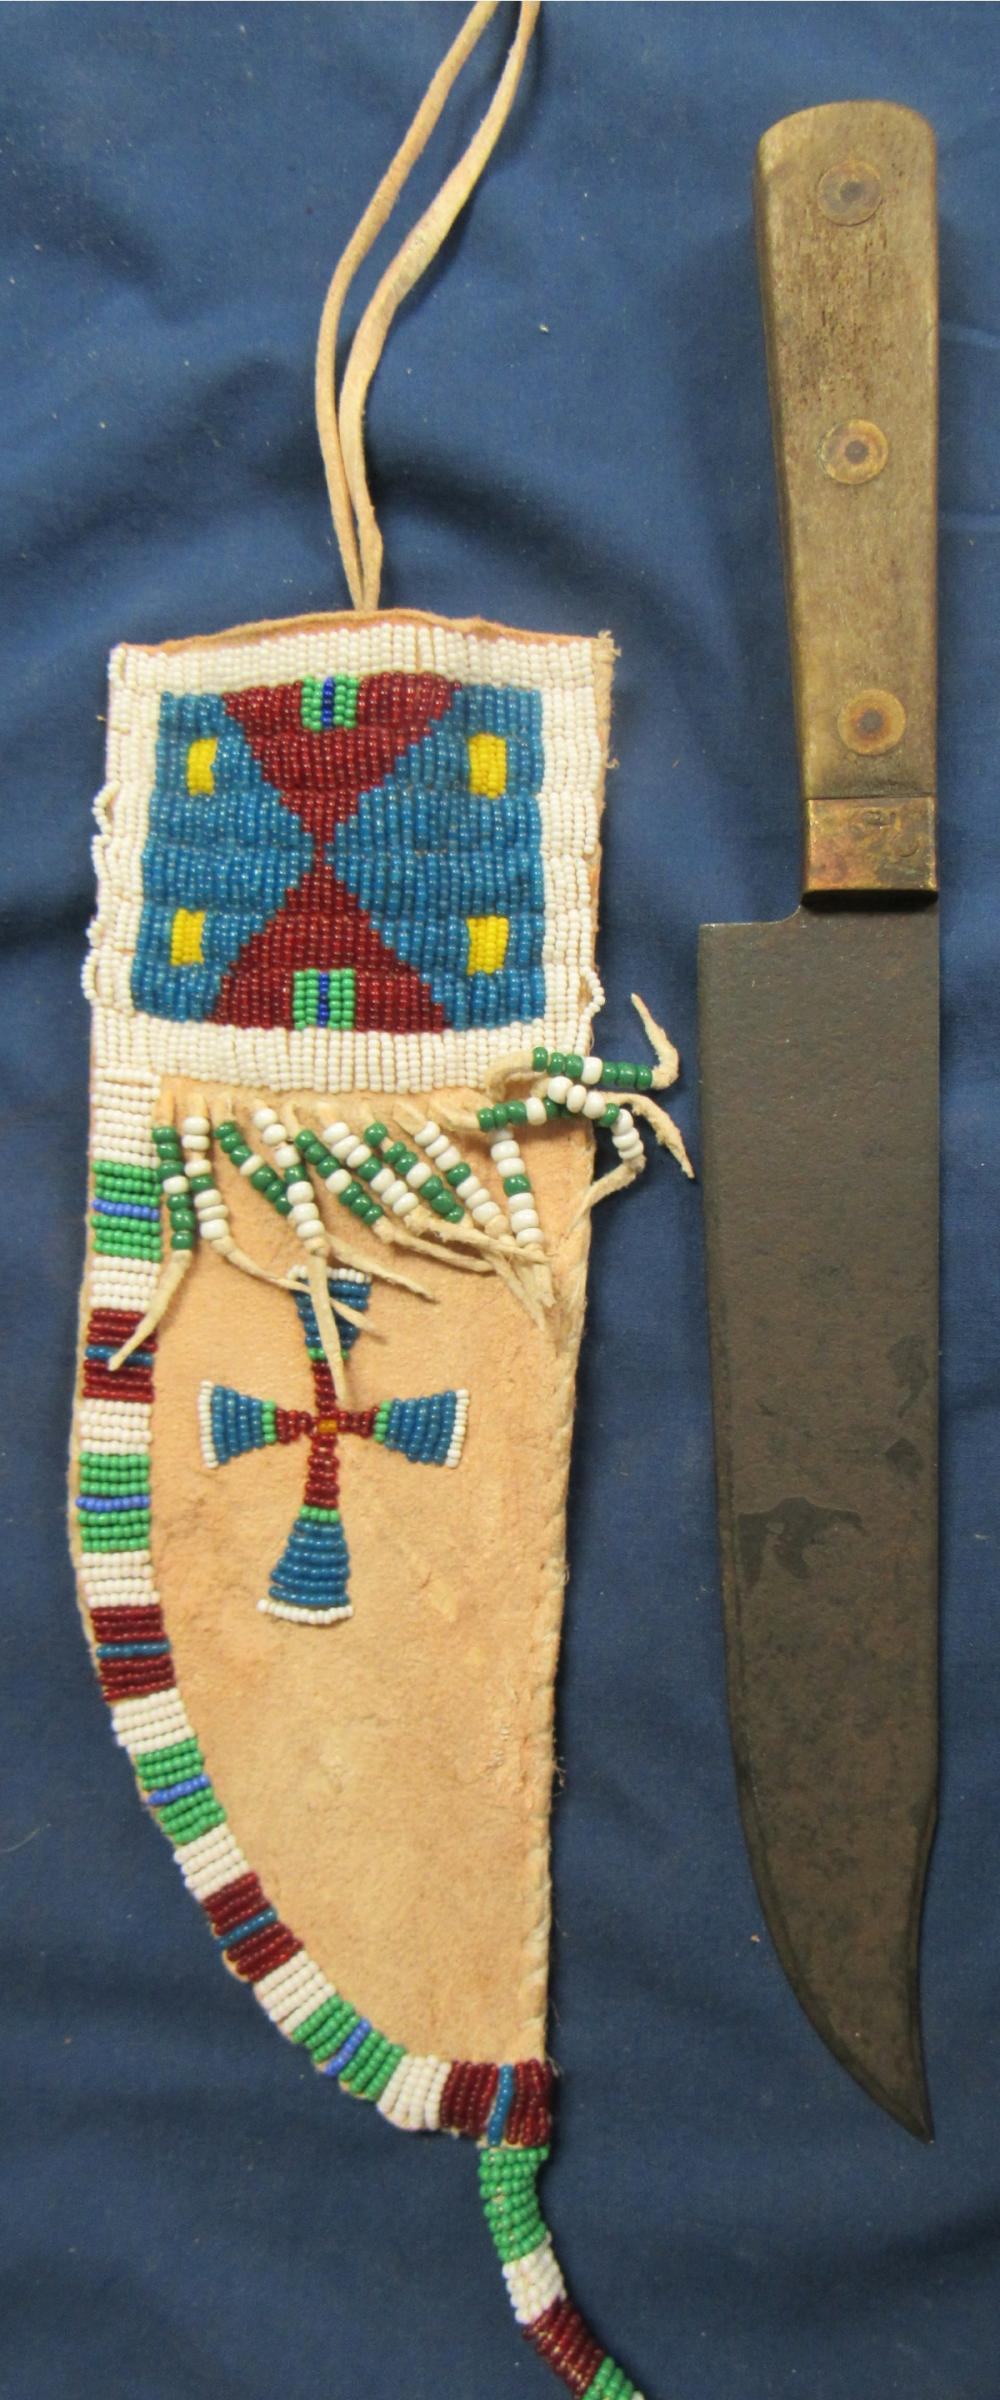 "Beaded Knife Sheath with Knife 12"" Long Marked HB, Sioux Origin"